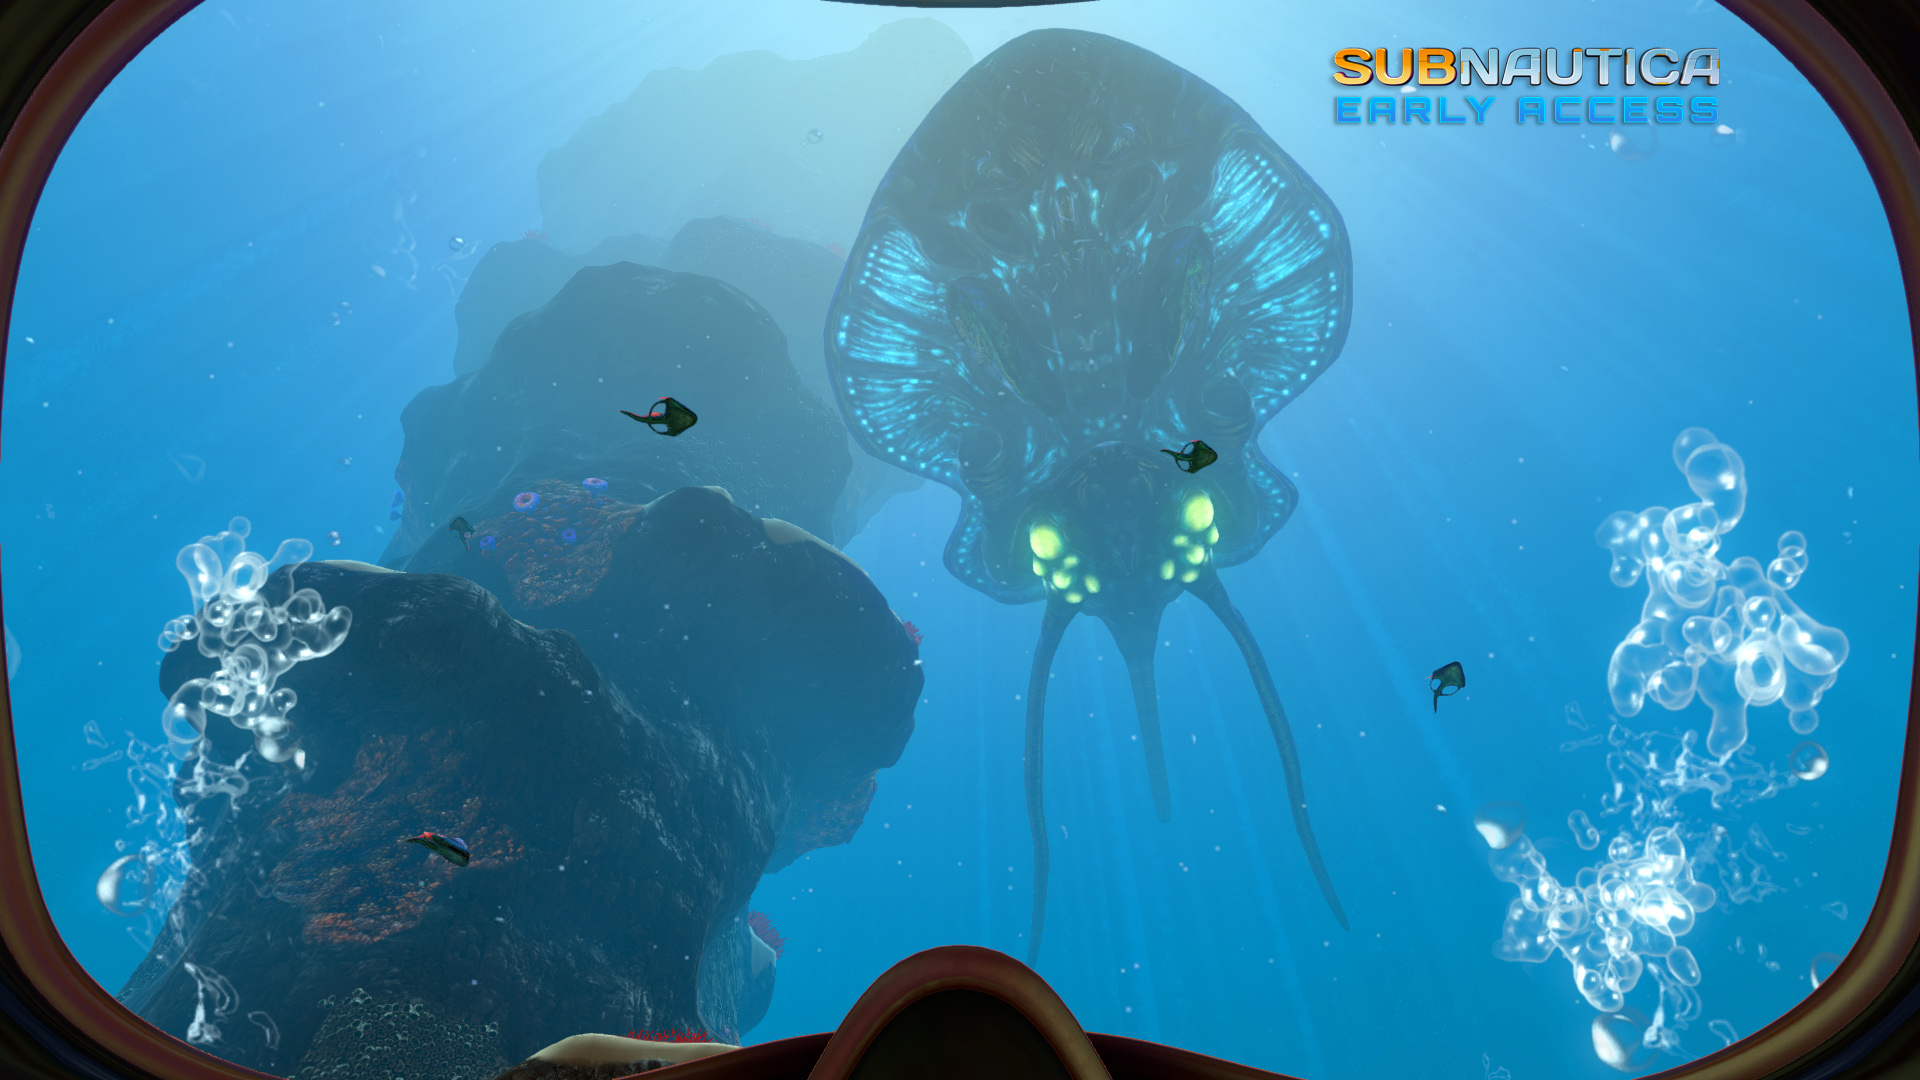 Subnautica Is A New Underwater Exploration FPS From Natural Selection 2 Devs The Escapist